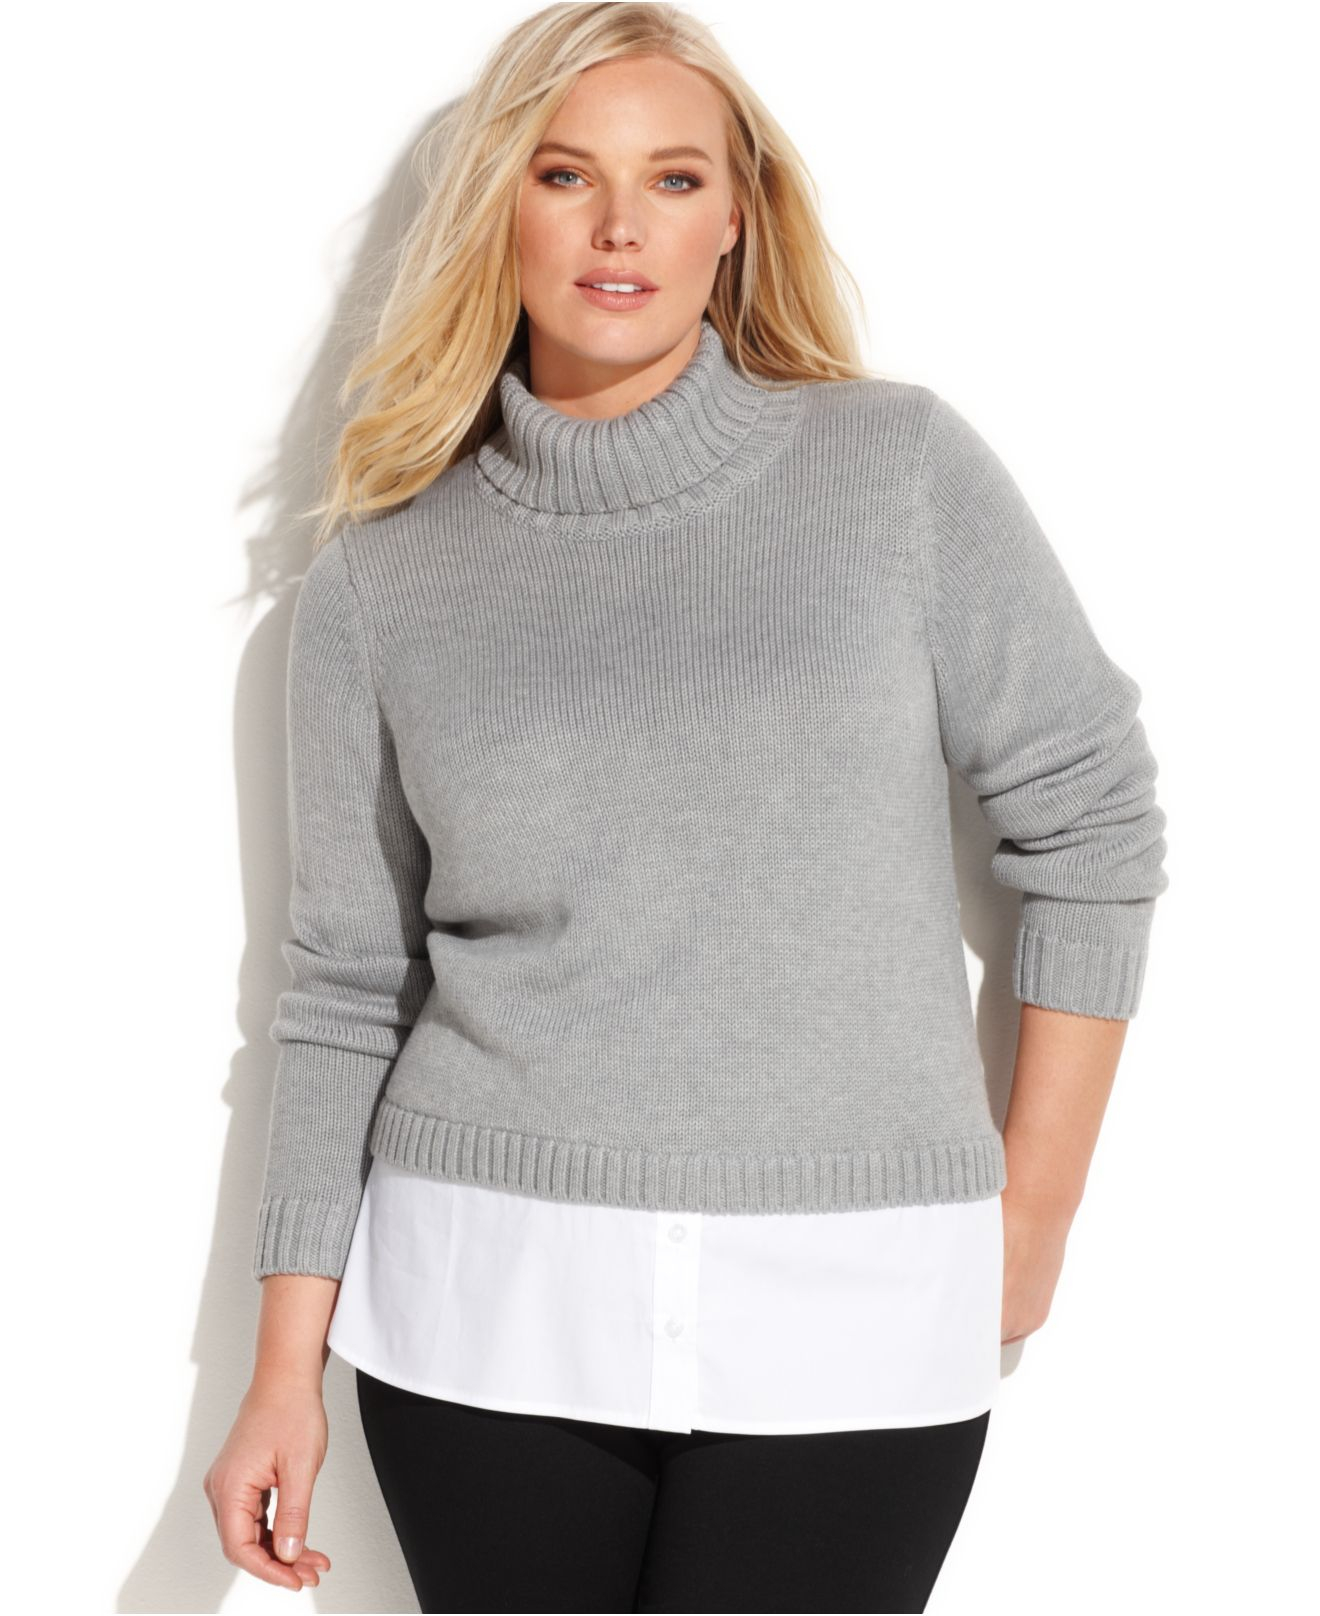 1689717ae65 Lyst - Calvin Klein Plus Size Layer-Look Turtleneck Sweater in Gray